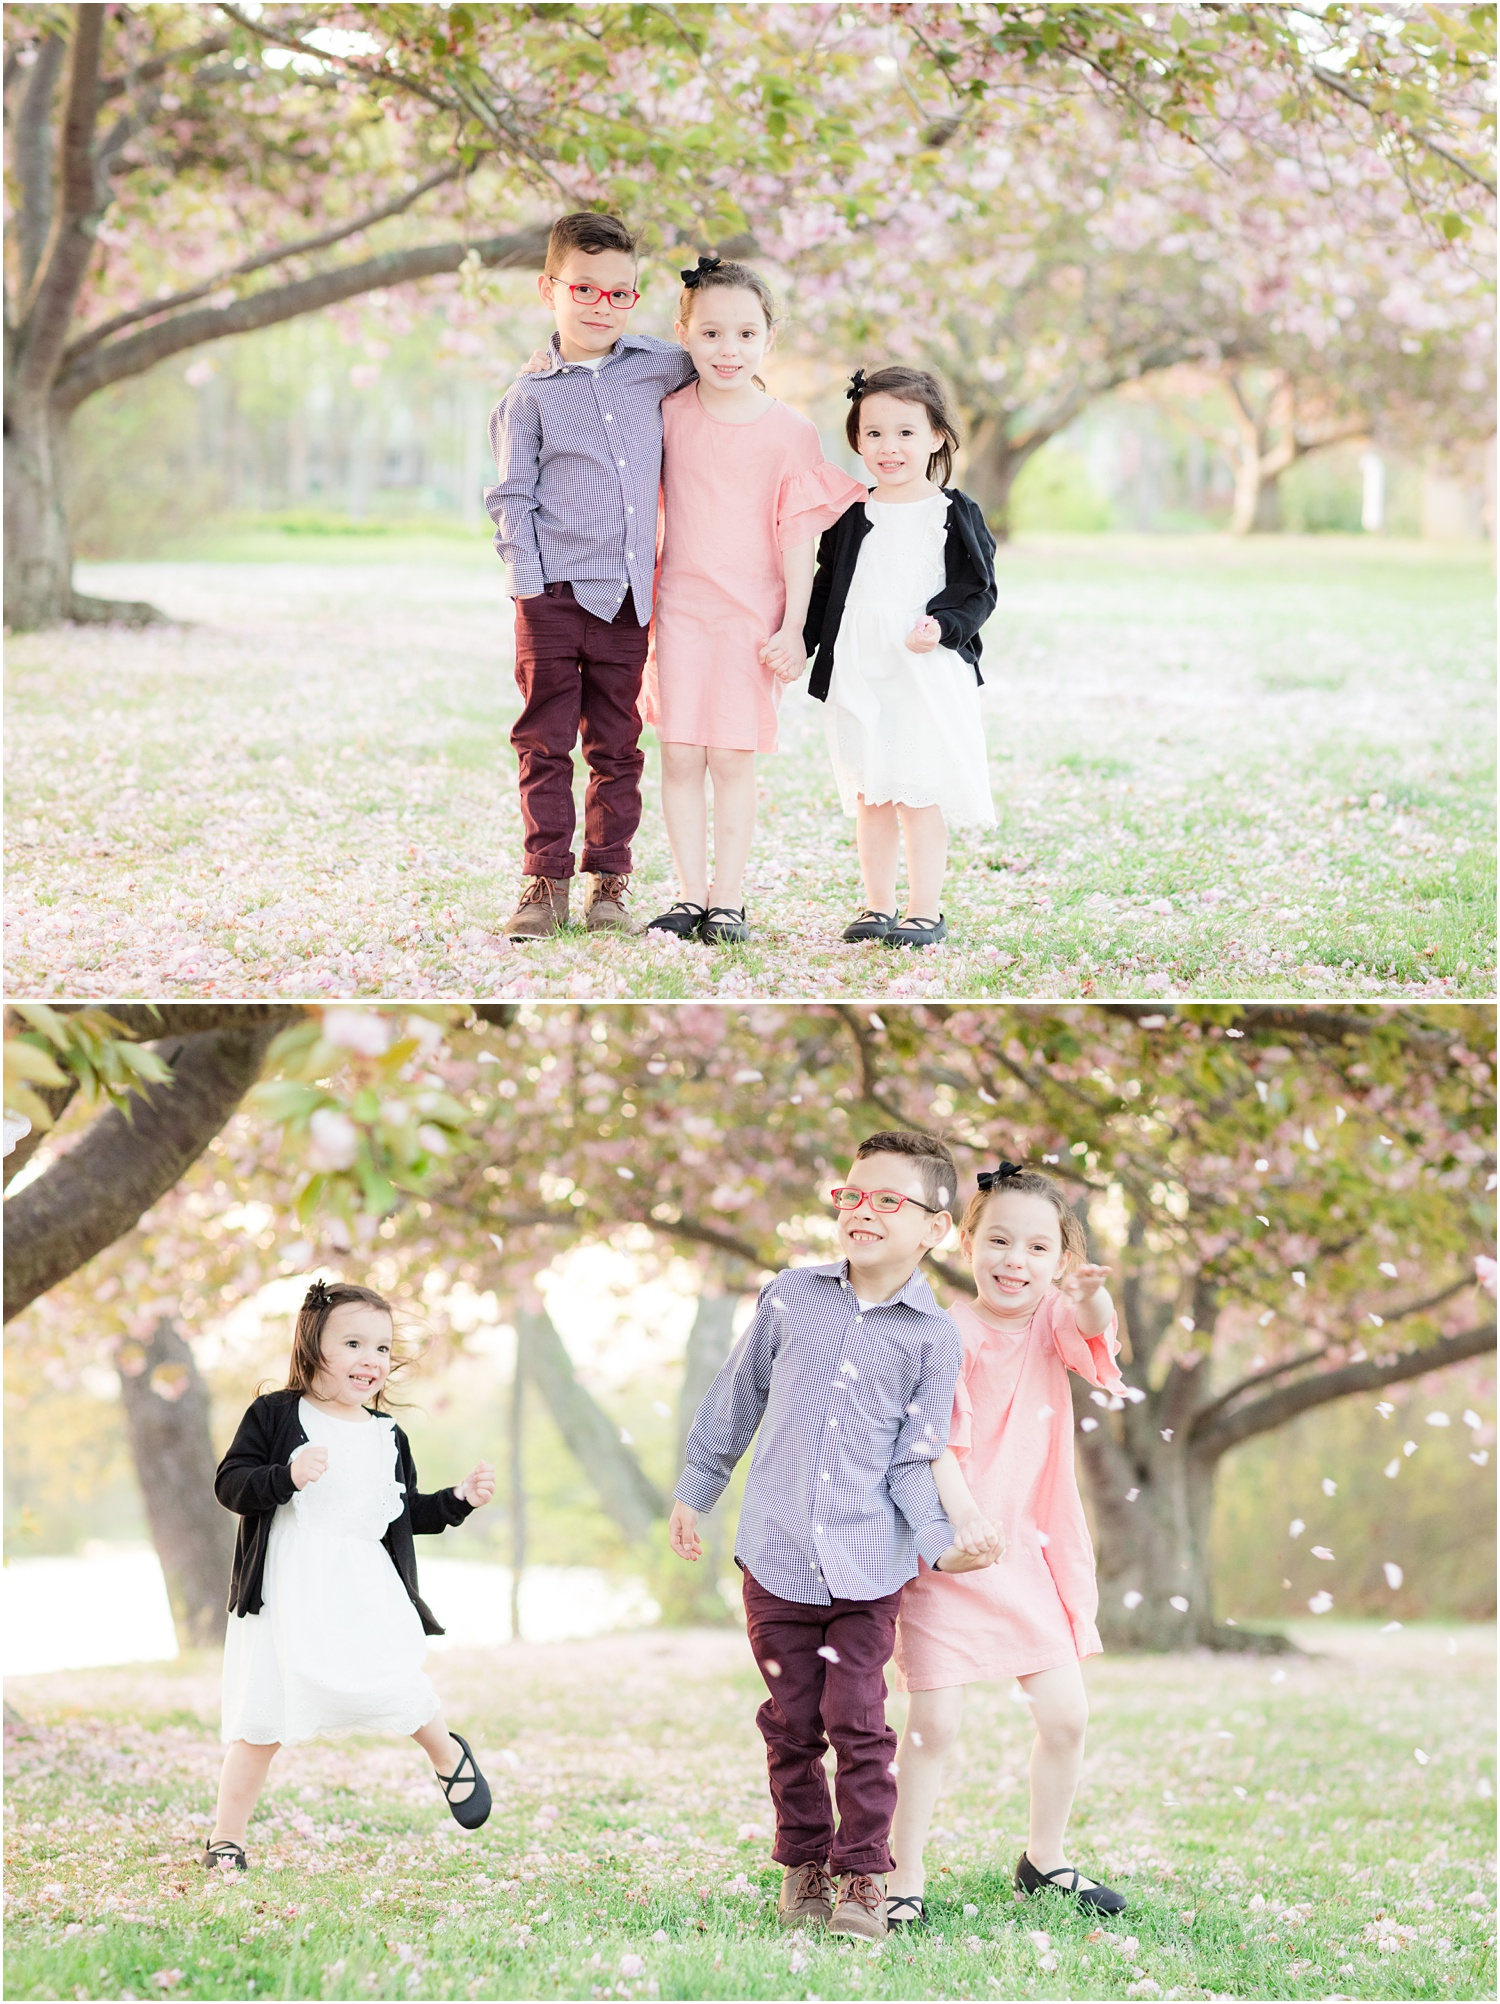 kids having fun with cherry blossoms at Divine Park in Spring Lake.